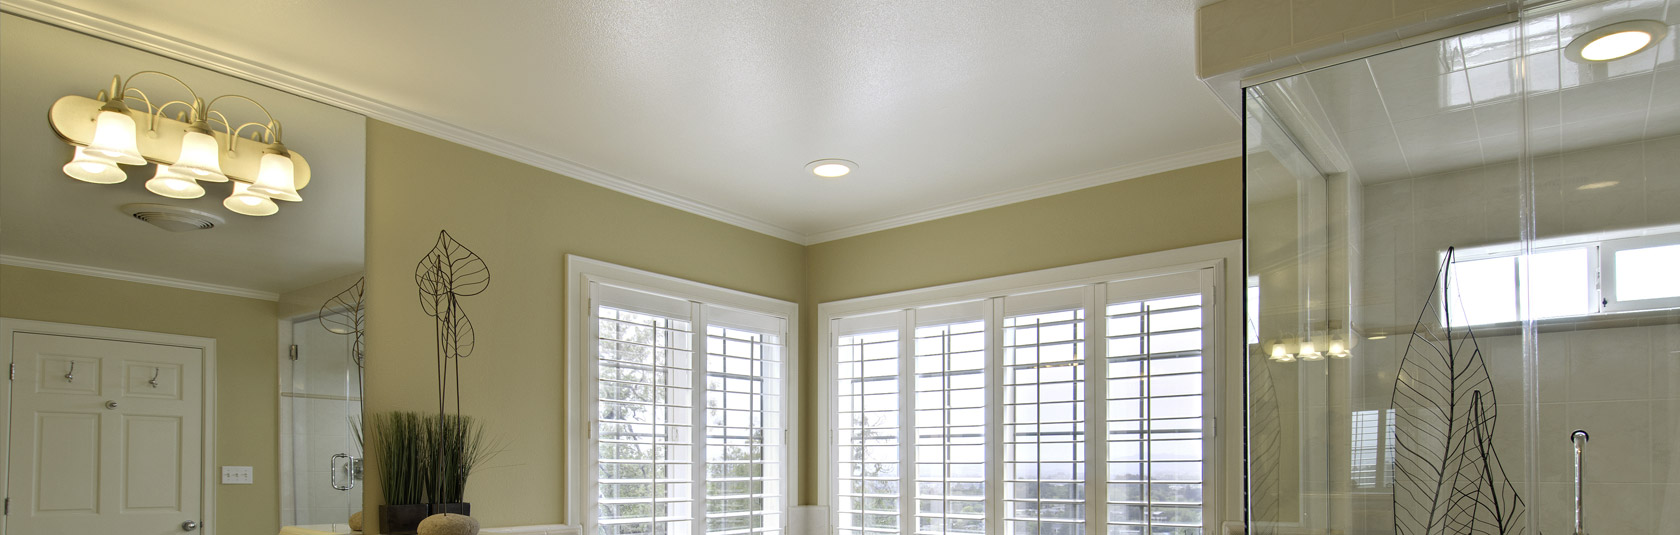 Abilene Electricians Residential Electrician Commercial Electric Windows Electrical Experts